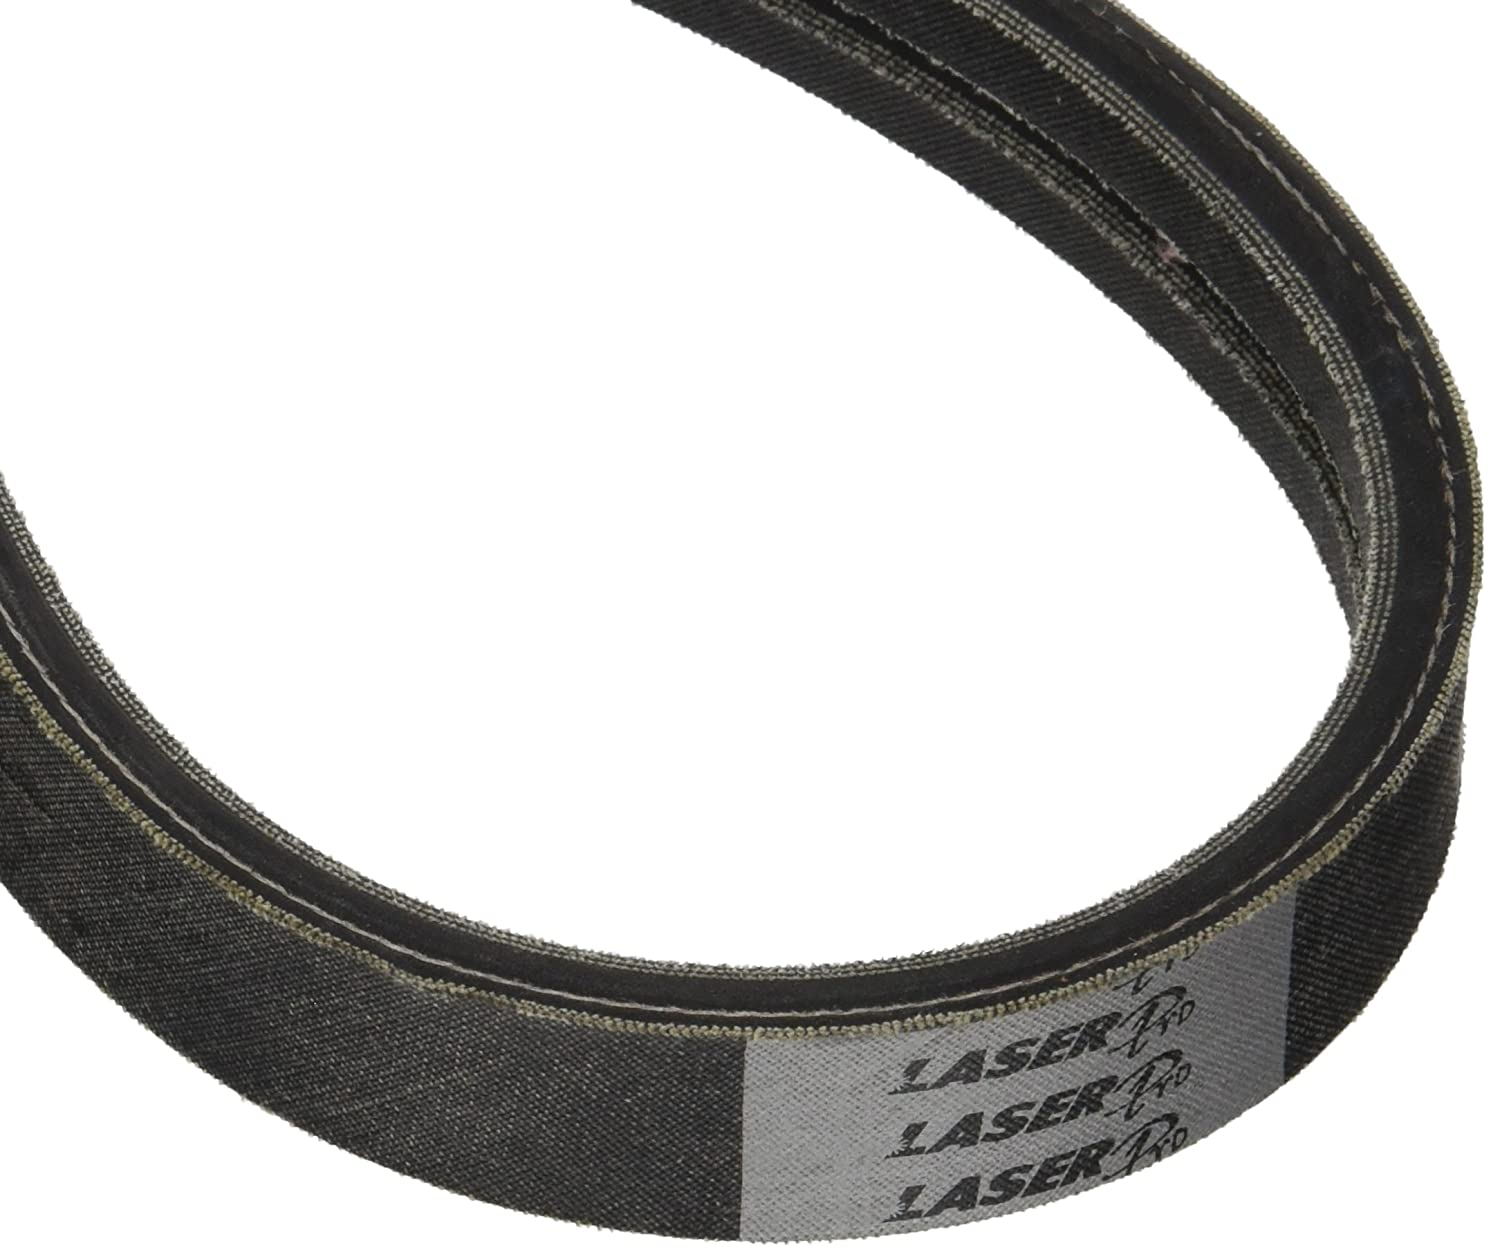 Oem Spec Drive Belt Scag 48202a Fits Commercial Walk Ditch Witch Timing Behind Mowers 48202 Garden Outdoor